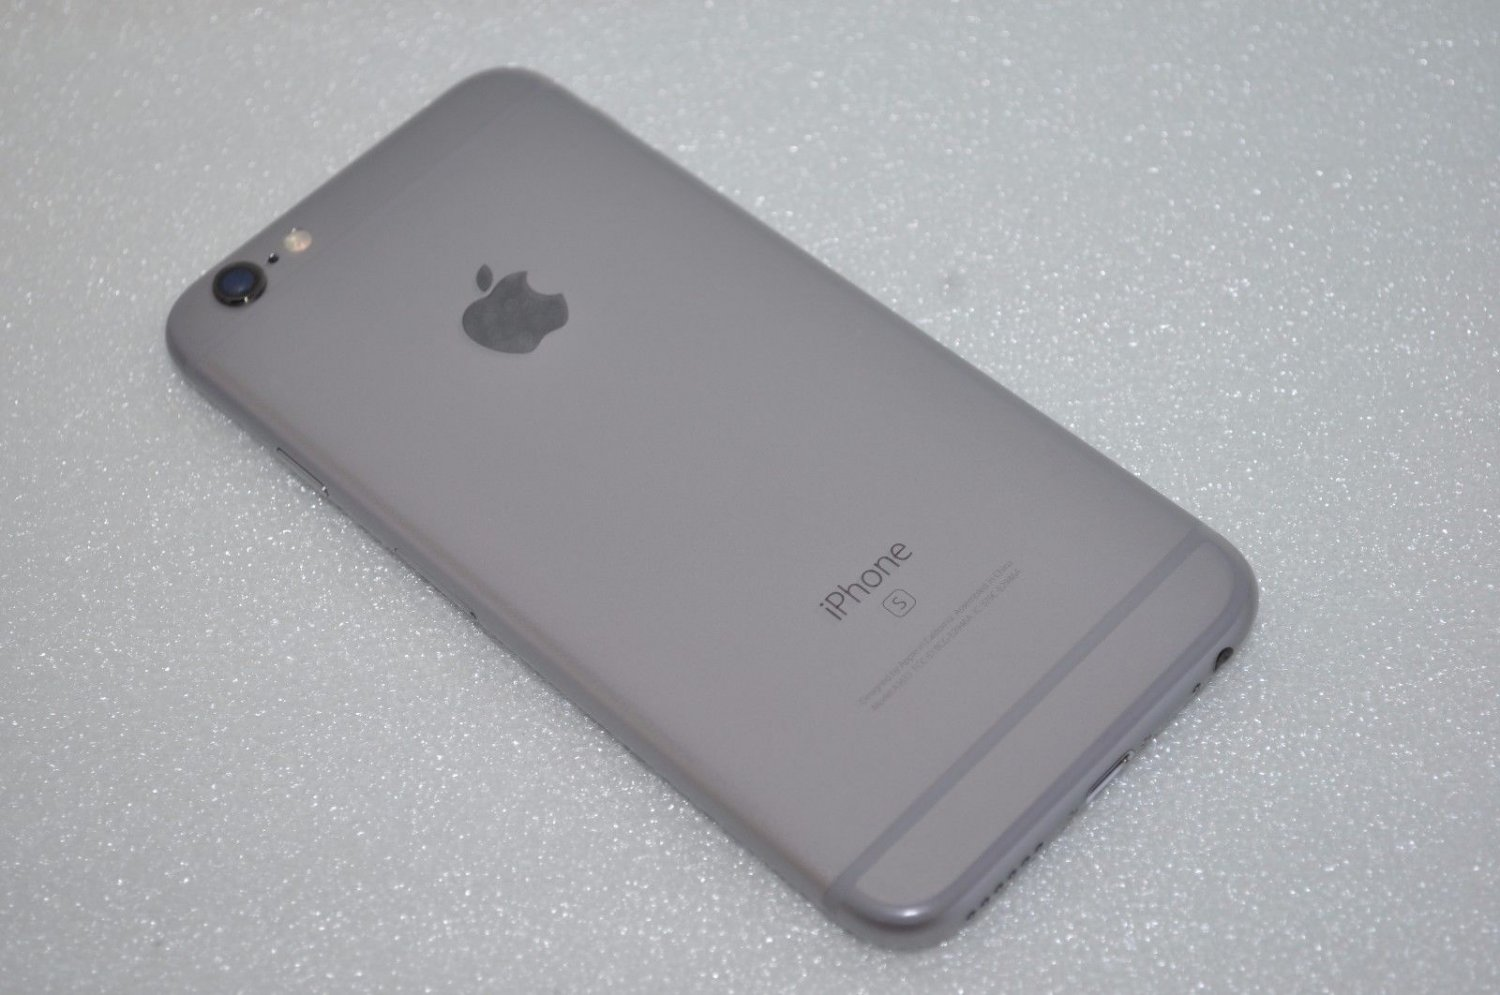 Apple iPhone 6s - 16GB - Space Gray (AT&T) Smartphone MKQ52LL/A UNLOCKED